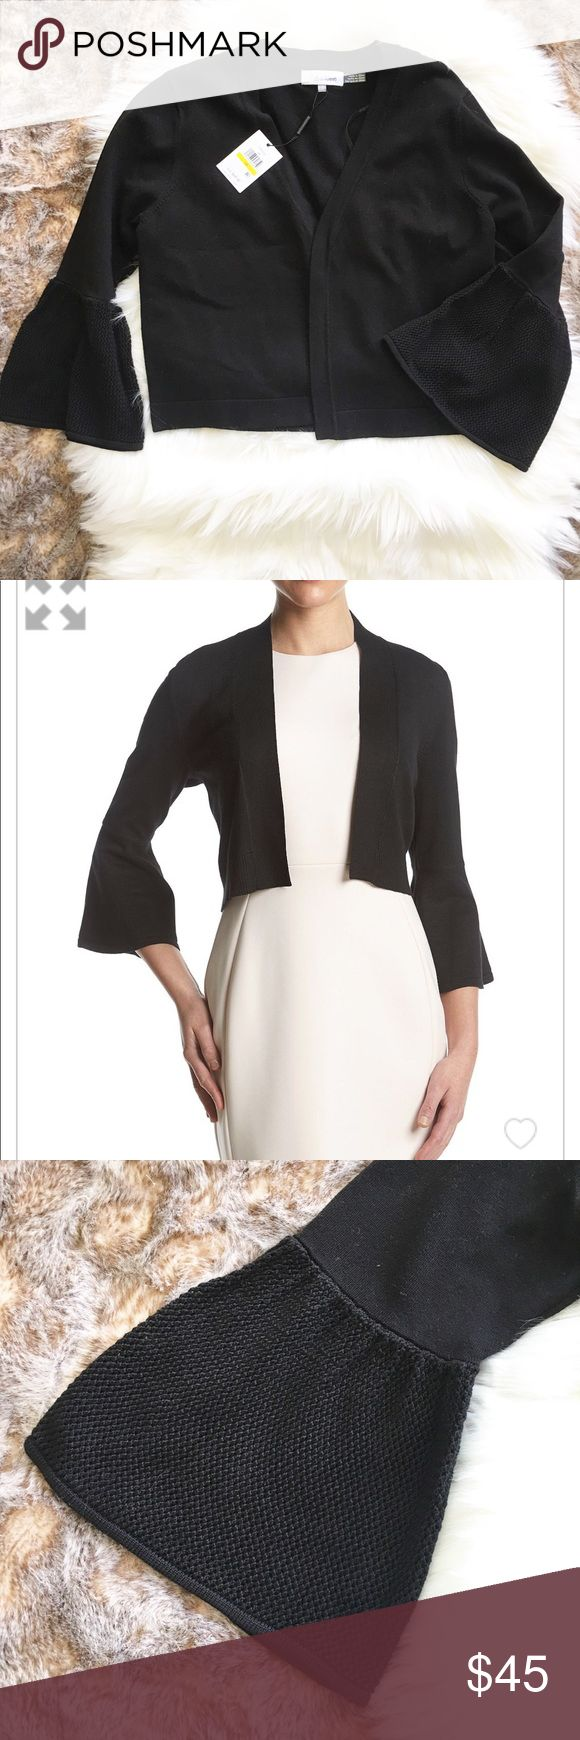 NWT Calvin Klein Black Cropped Bell Sleeve Shrug NWT  CALVIN KLEIN  Black Cropped Shrug Sweater  Crochet Bell Sleeves  Rayon & Nylon  Size Medium  18 inches across + 18 Long 2nd pic is not exact sweater -just similar style Calvin Klein Sweaters Shrugs & Ponchos